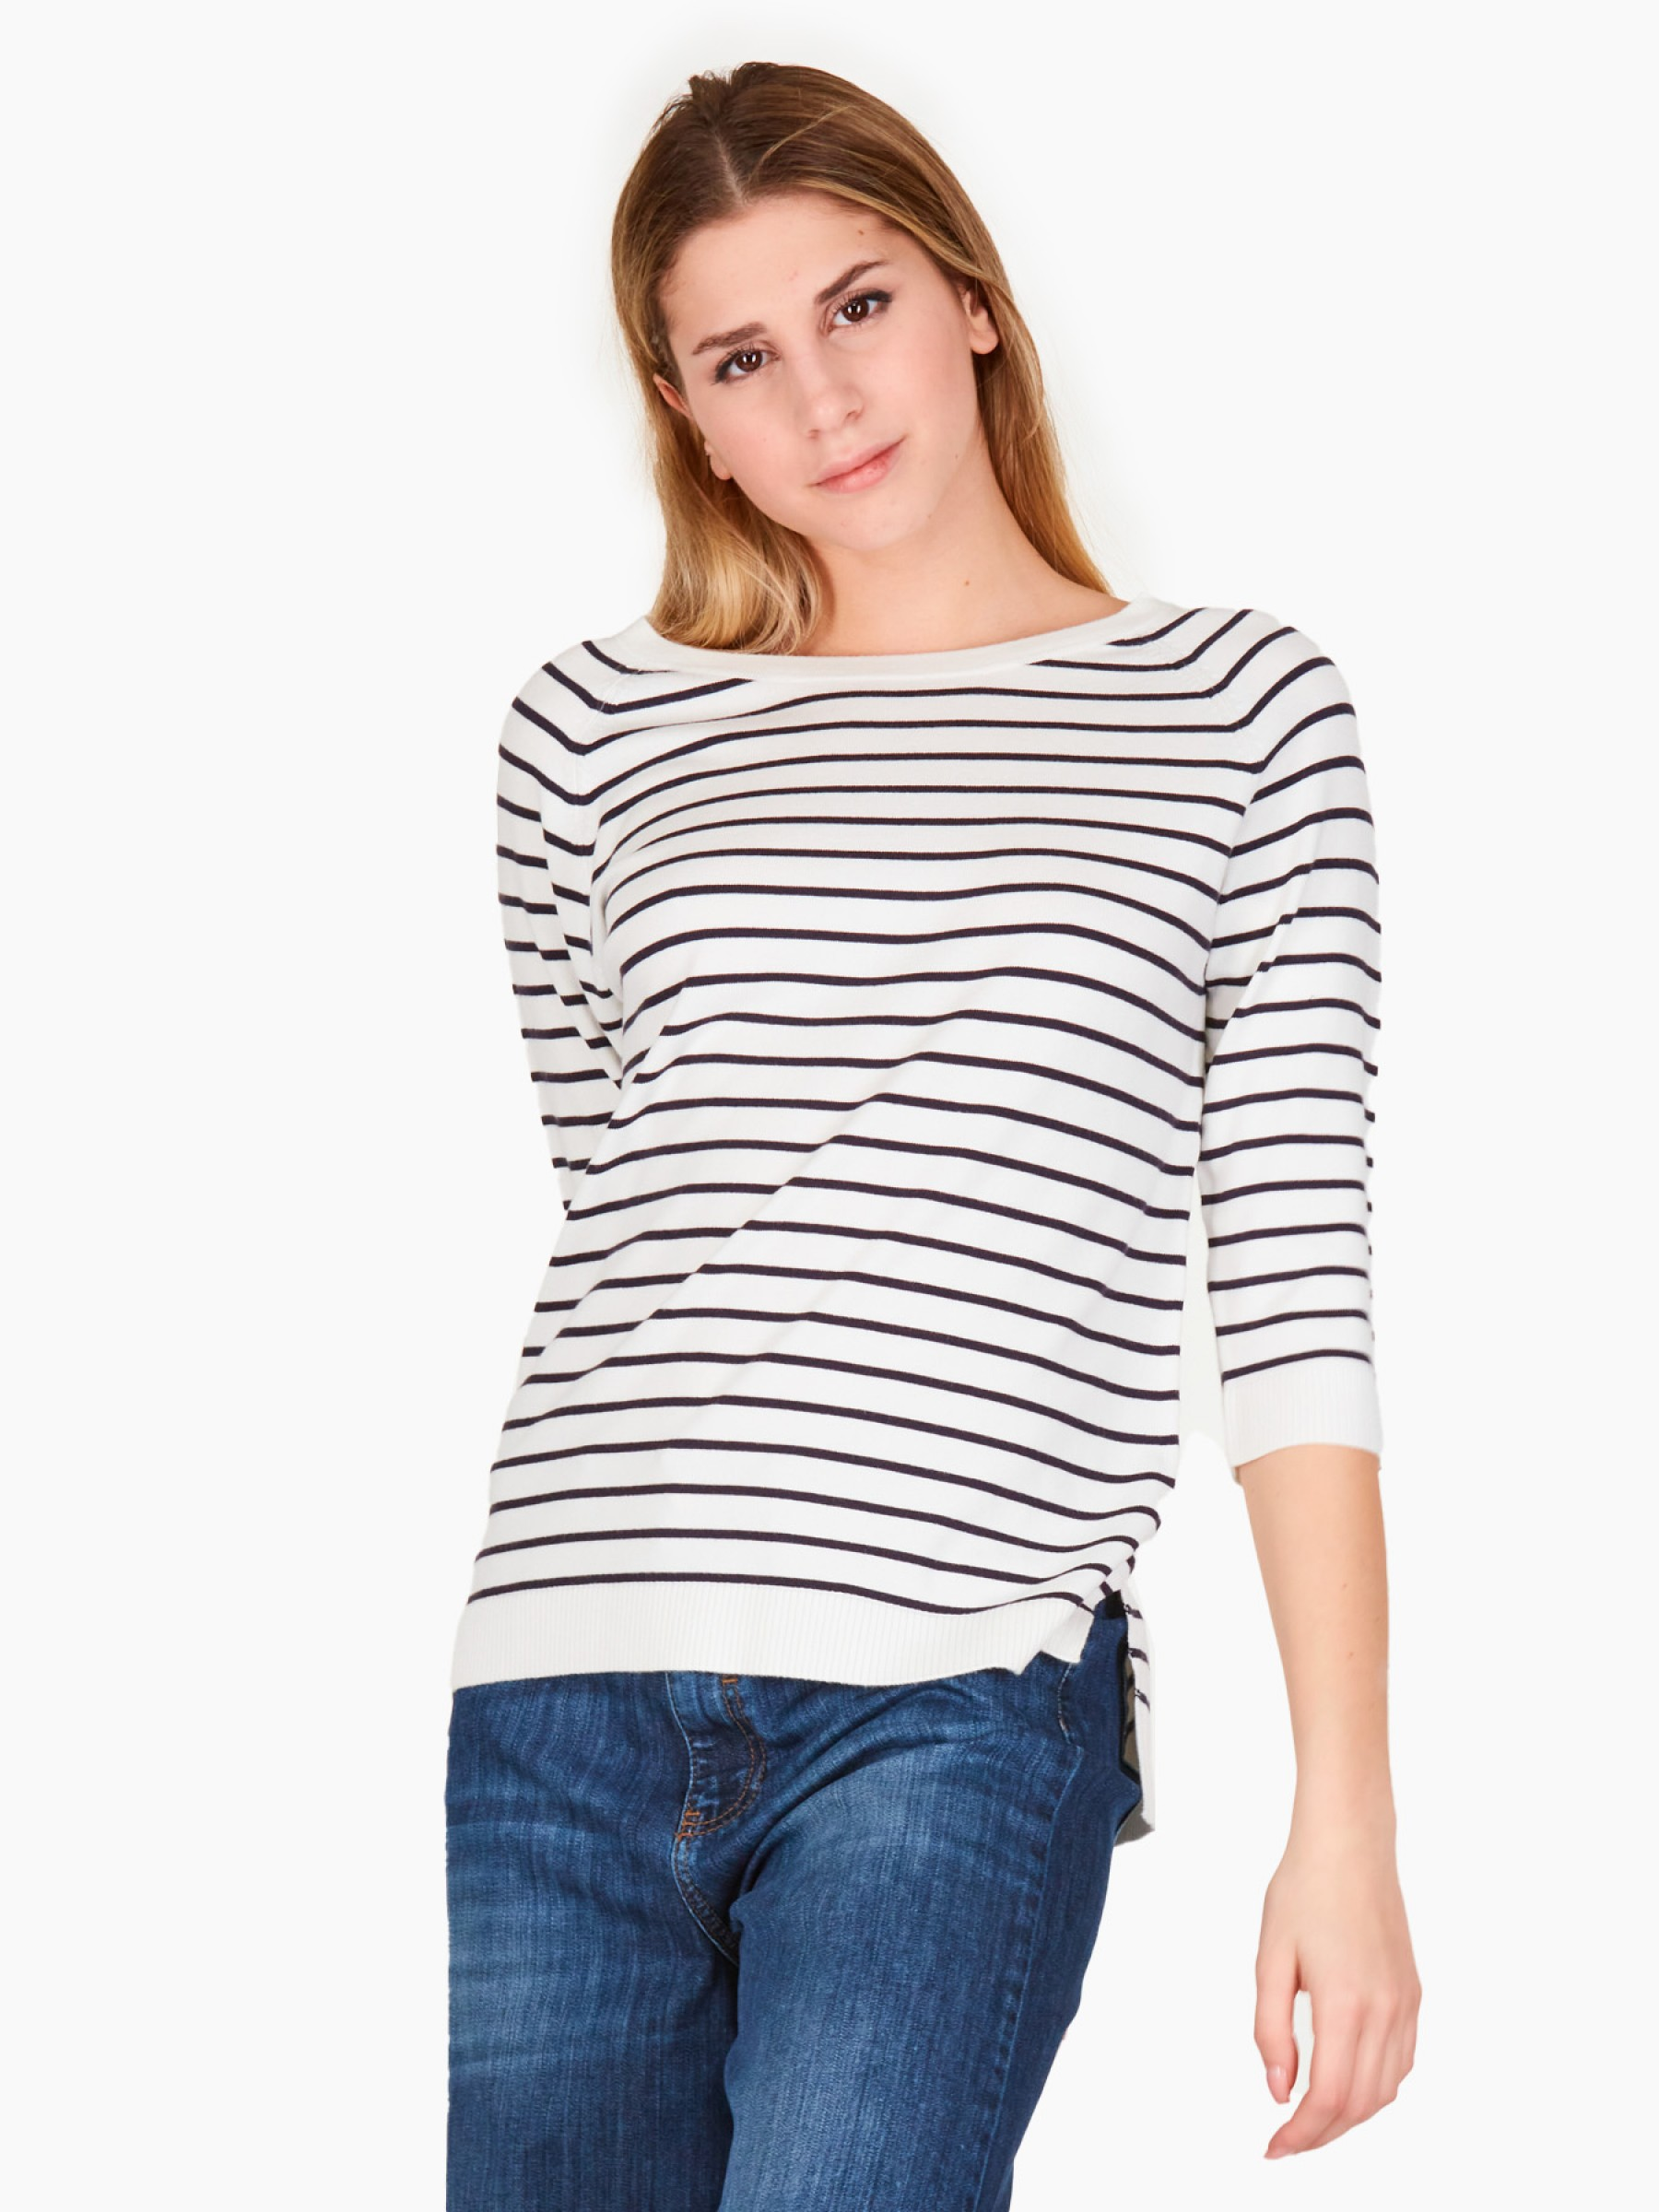 Emme Maglia a righe PE2021 LANCIA-010-NAVY-BIANCO